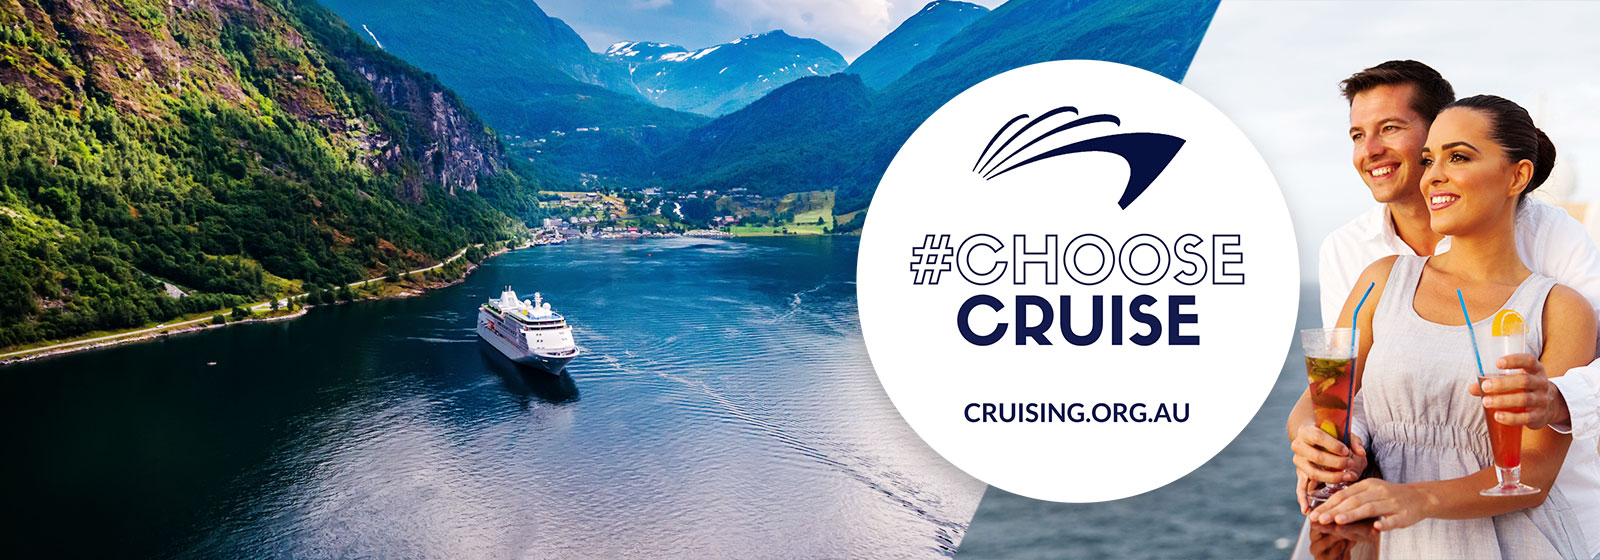 Choose Cruise